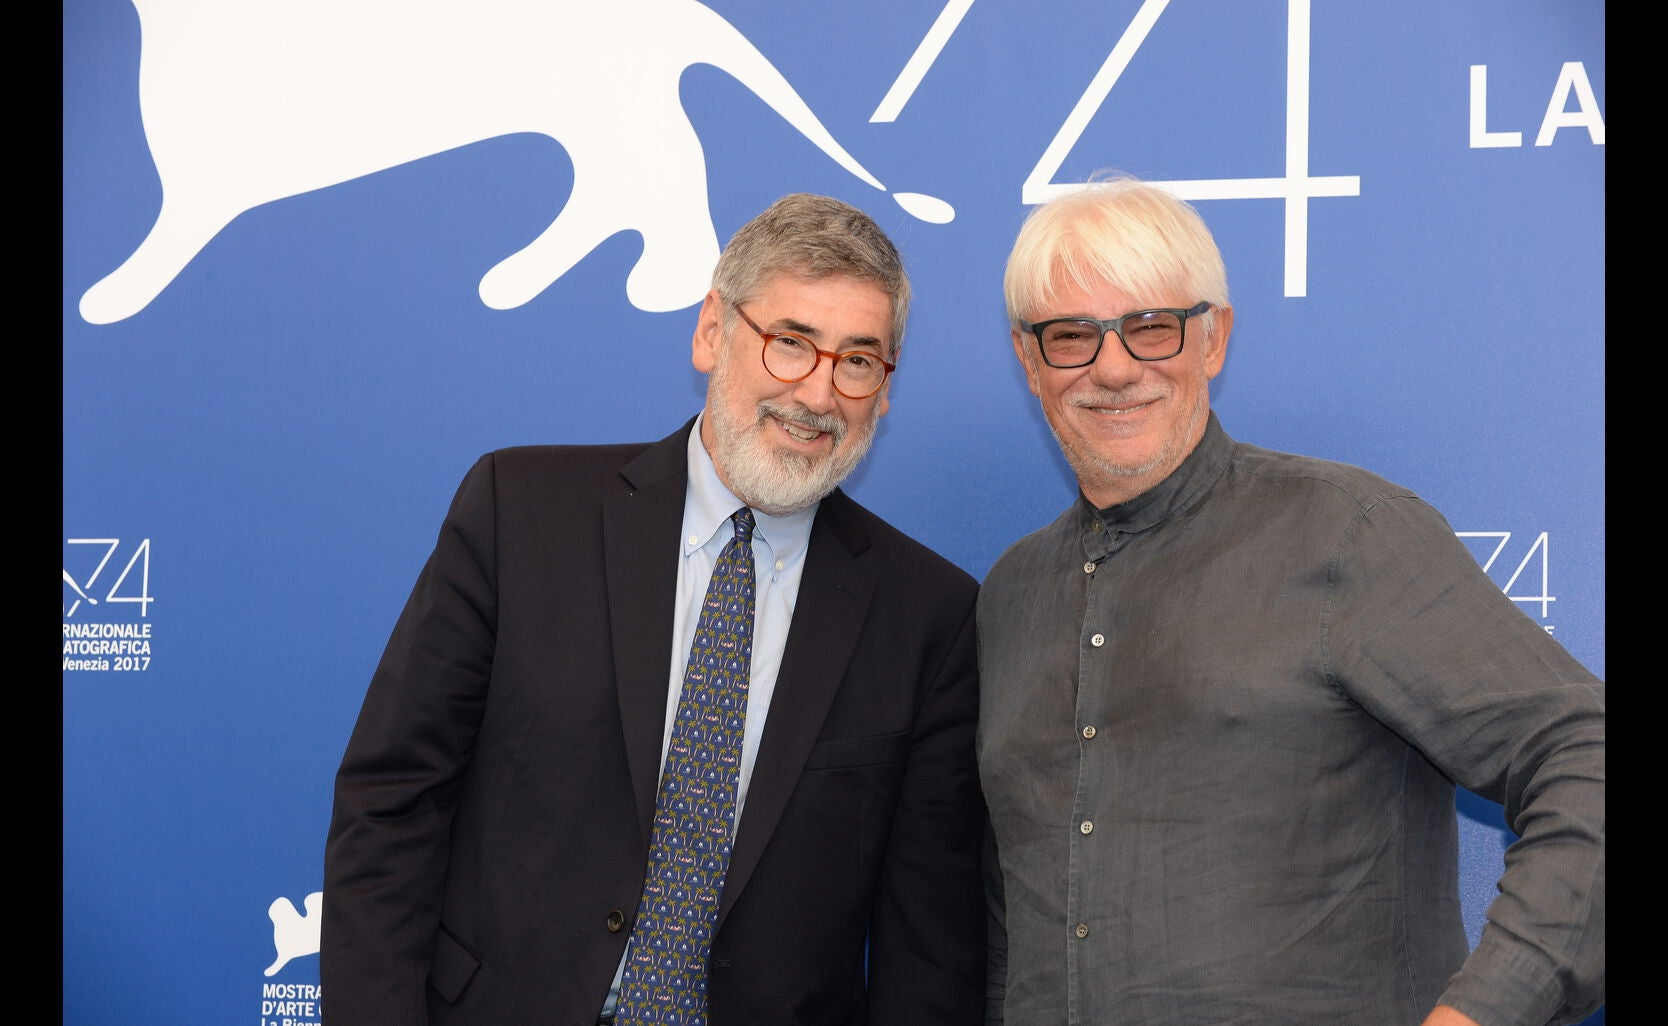 Directors John Landis and Ricky Tognazzi, jury memebr at the 2017 Venice Film Festival